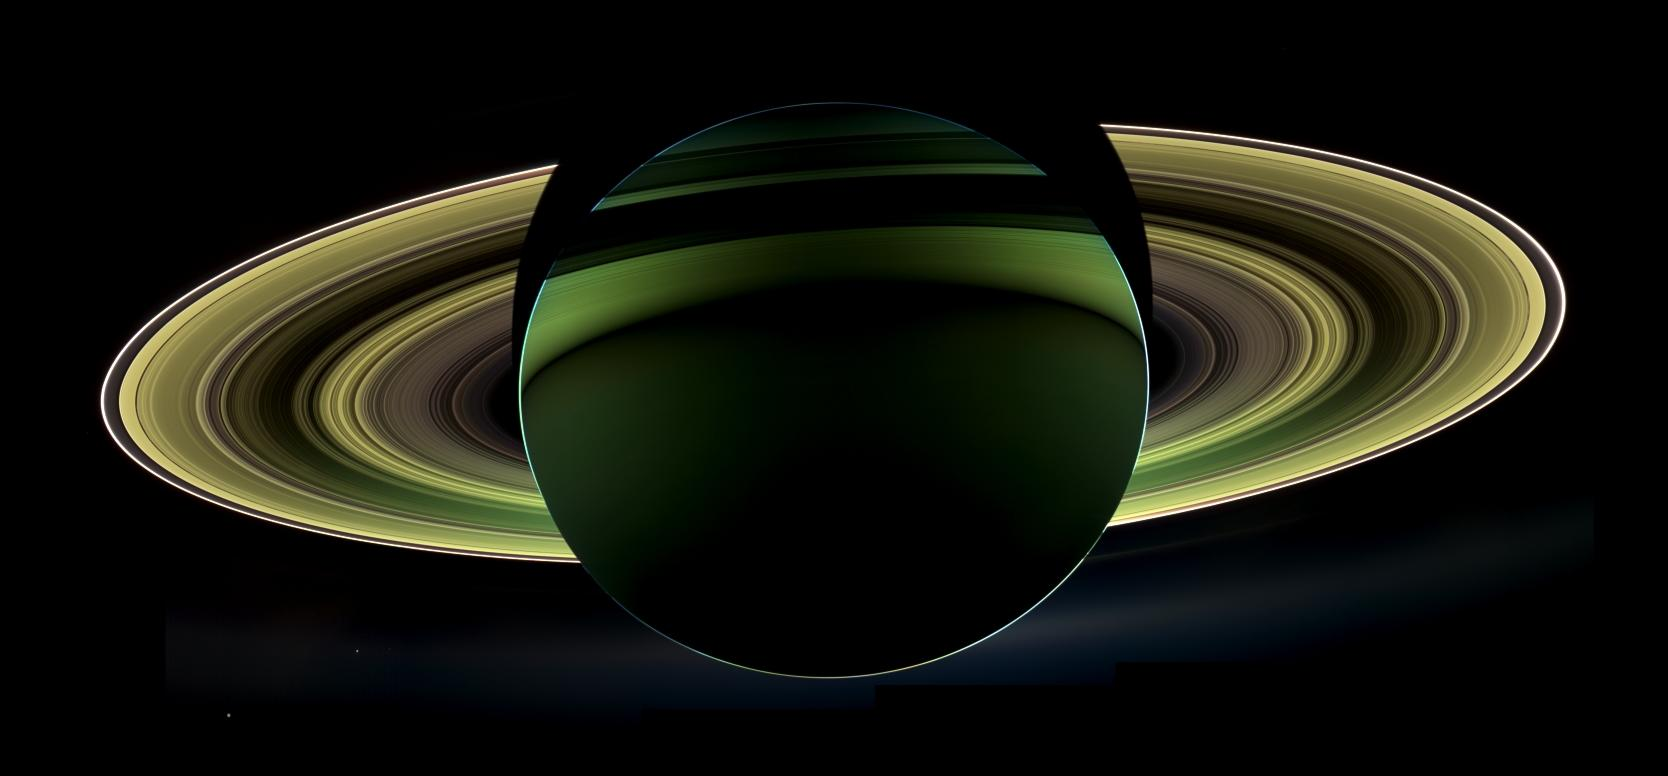 An image of a backlit, green-colored Saturn